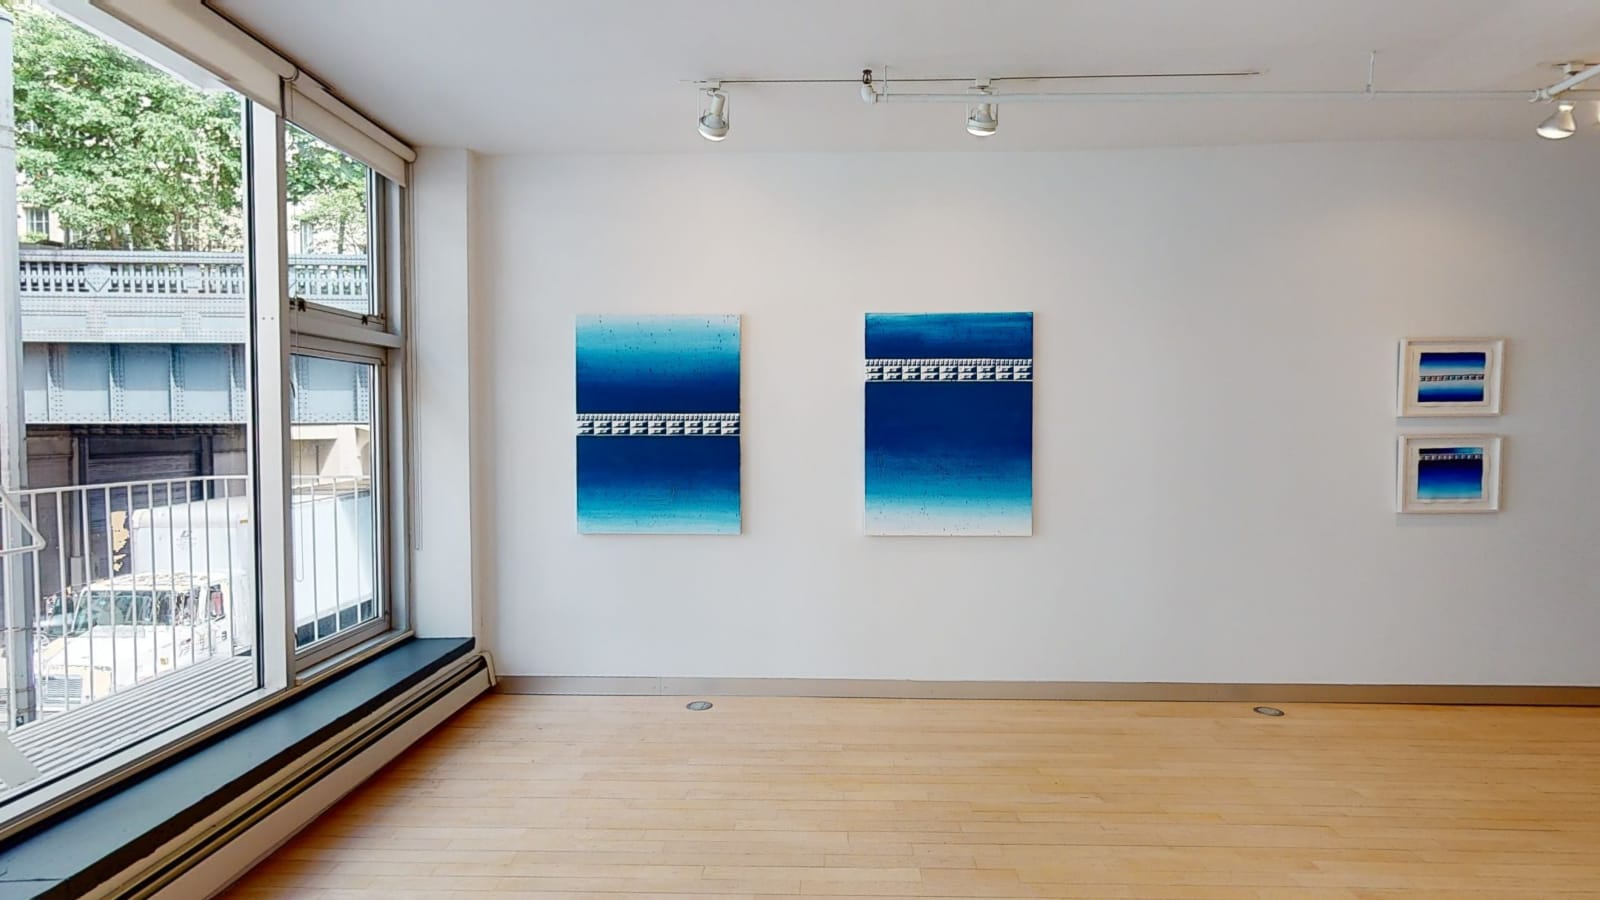 Installation view: Perceived Realities